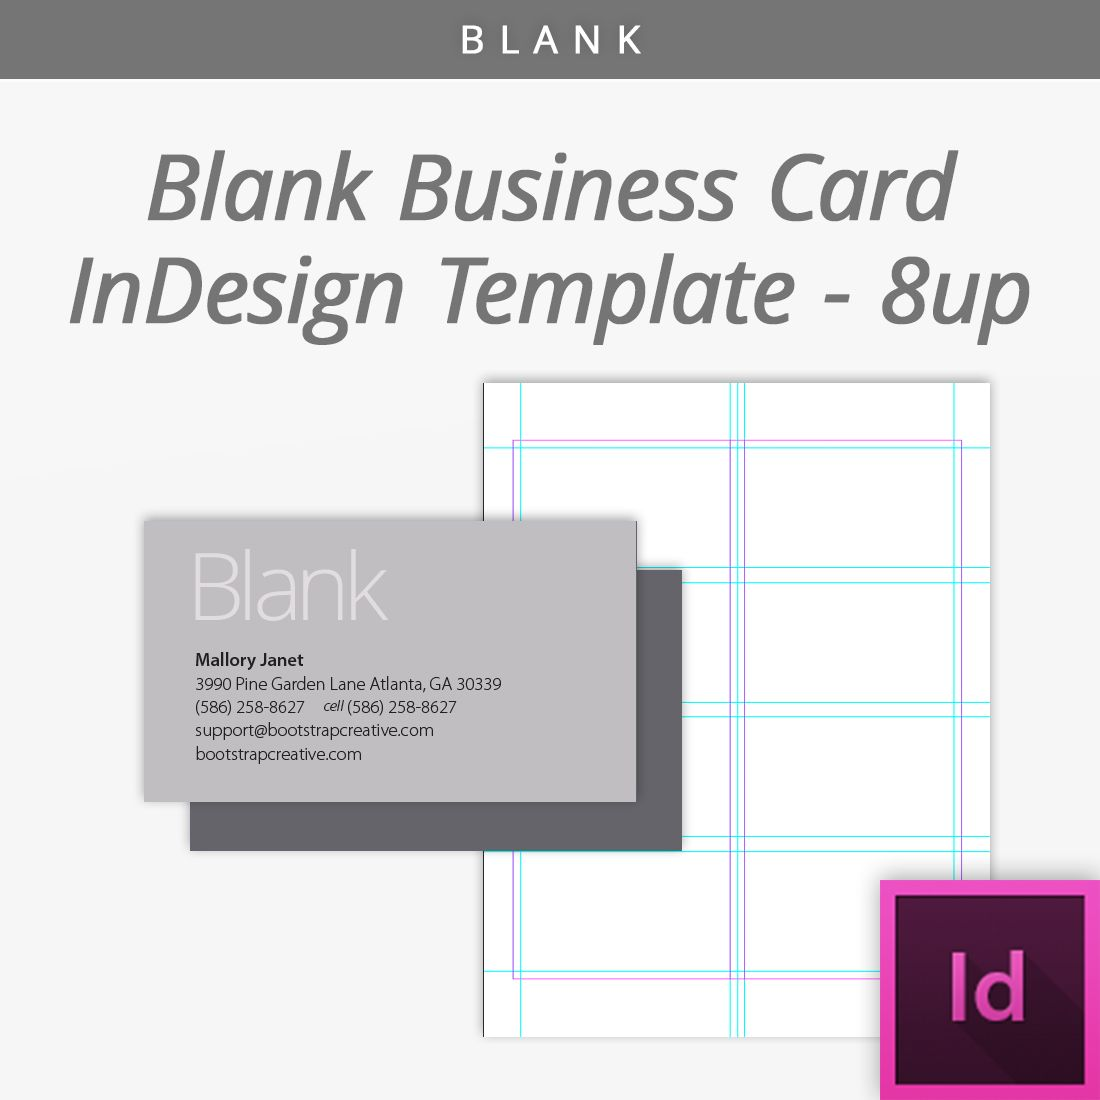 Blank indesign business card template 8 up free download for Photo business card template